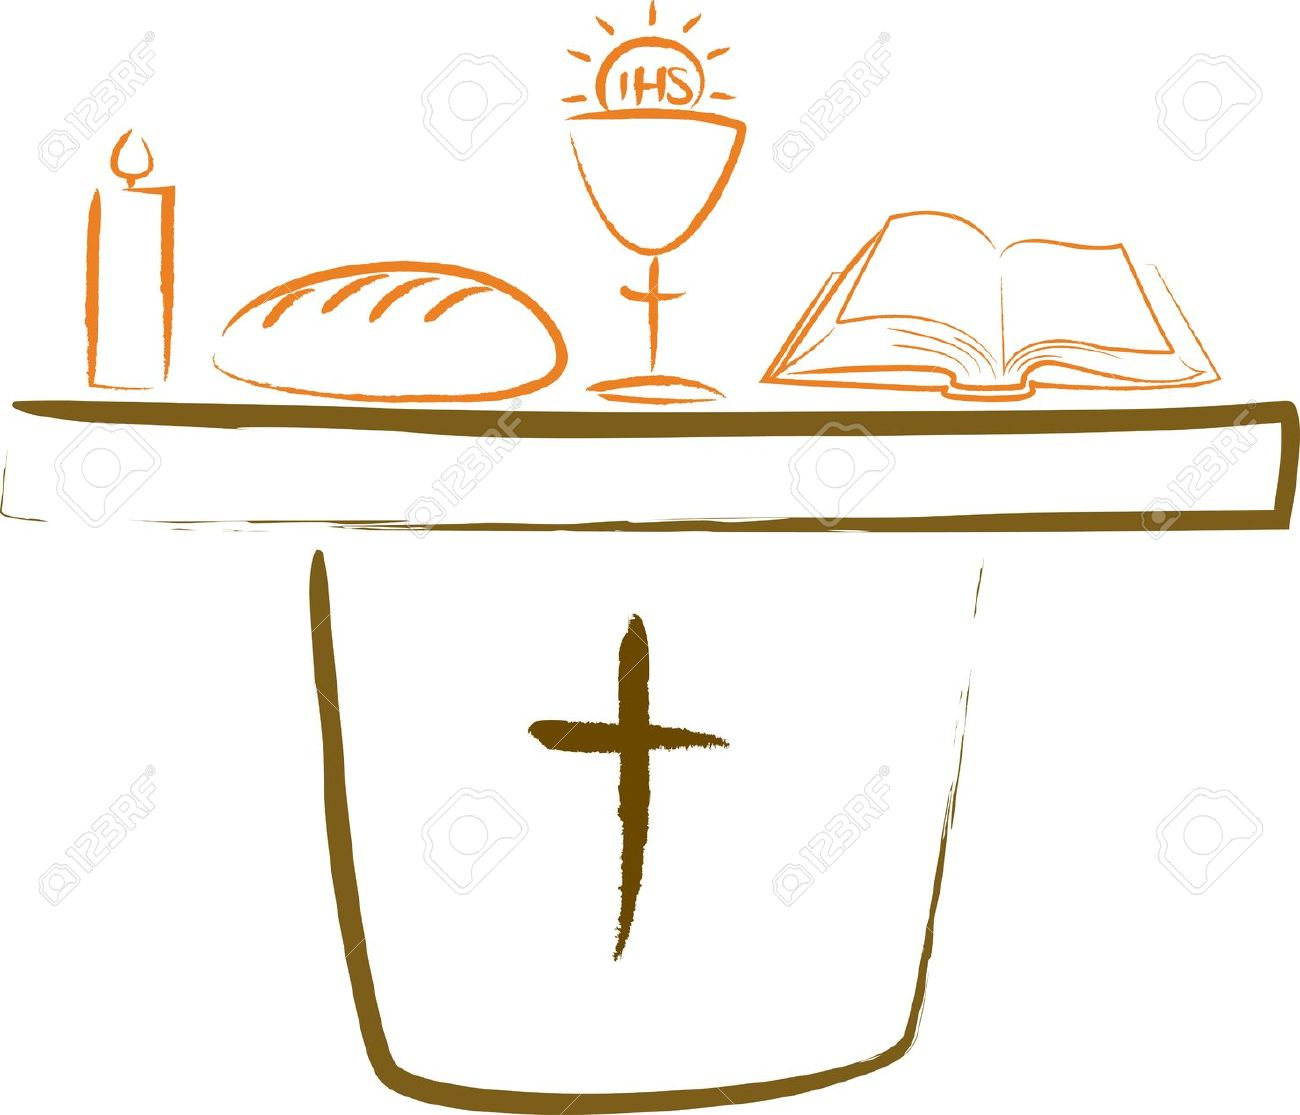 First Communion Clipart at GetDrawings.com.